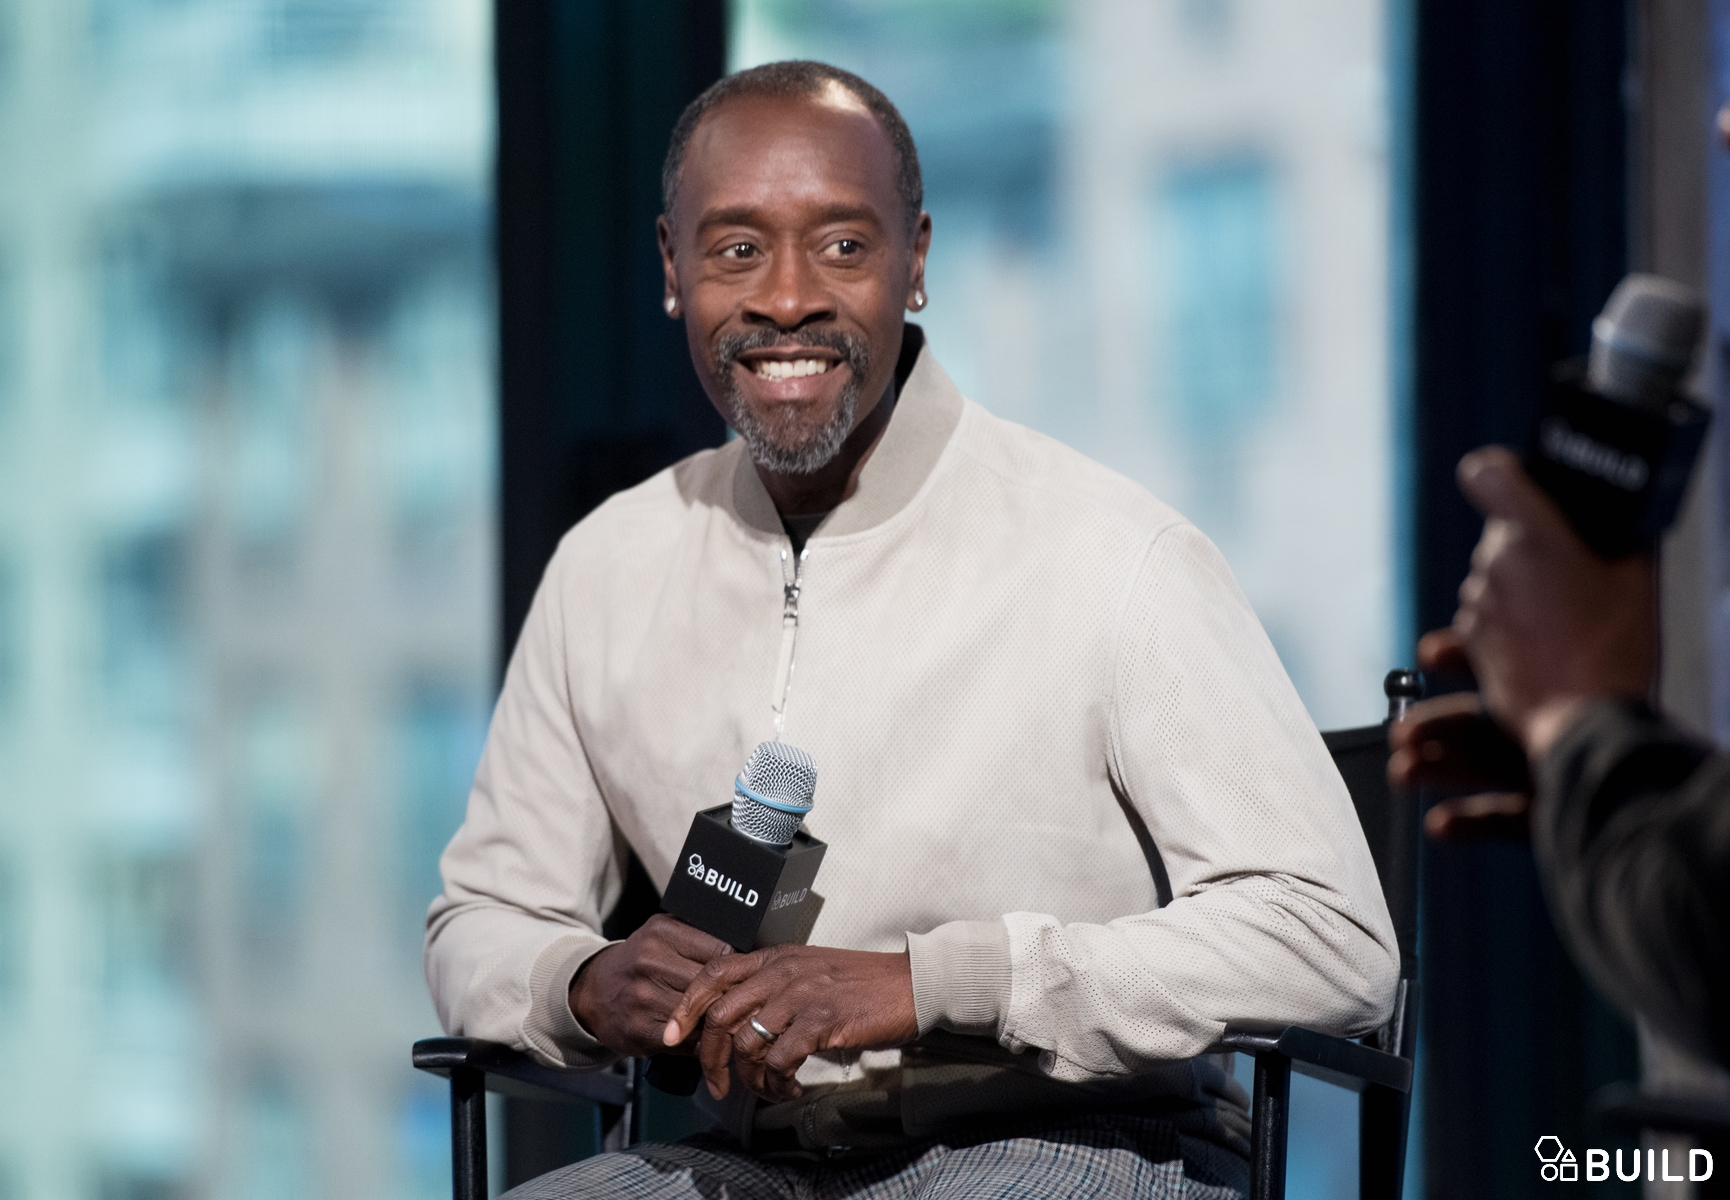 Don Cheadle visits AOL Hq for Build on March 24, 2016 in New York. Photos by Noam Galai